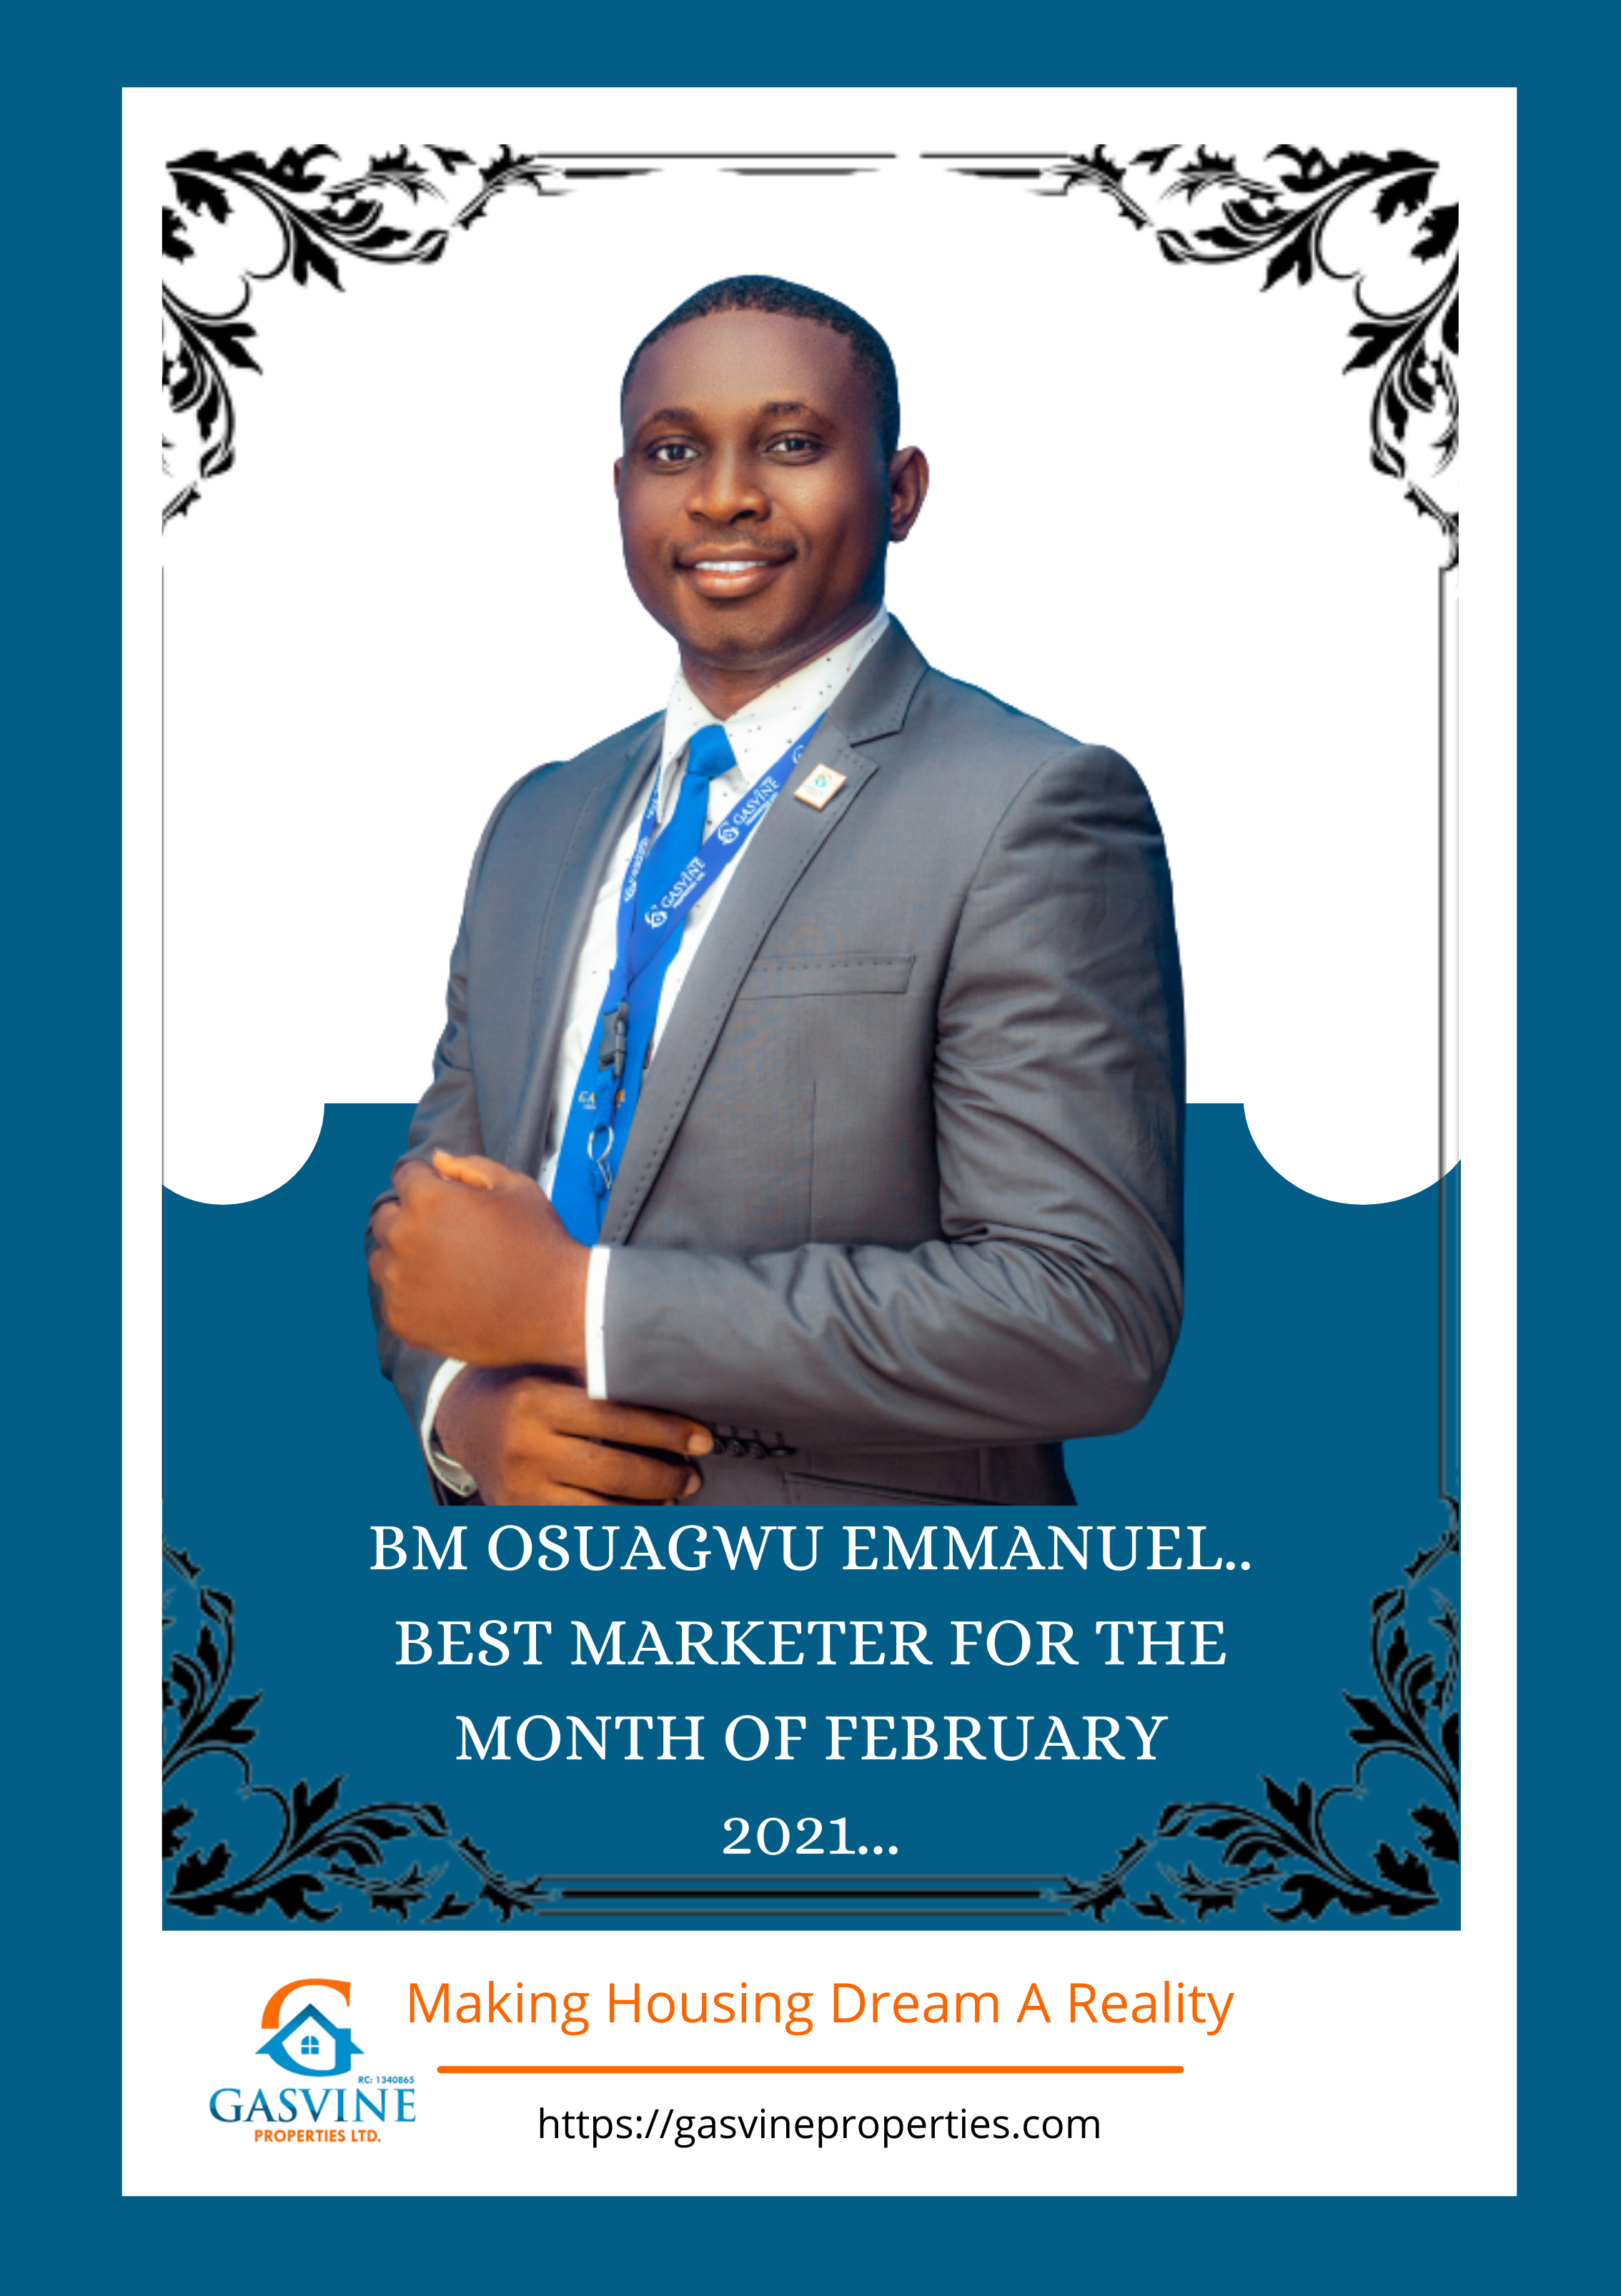 Best Marketer for the month of february 2021